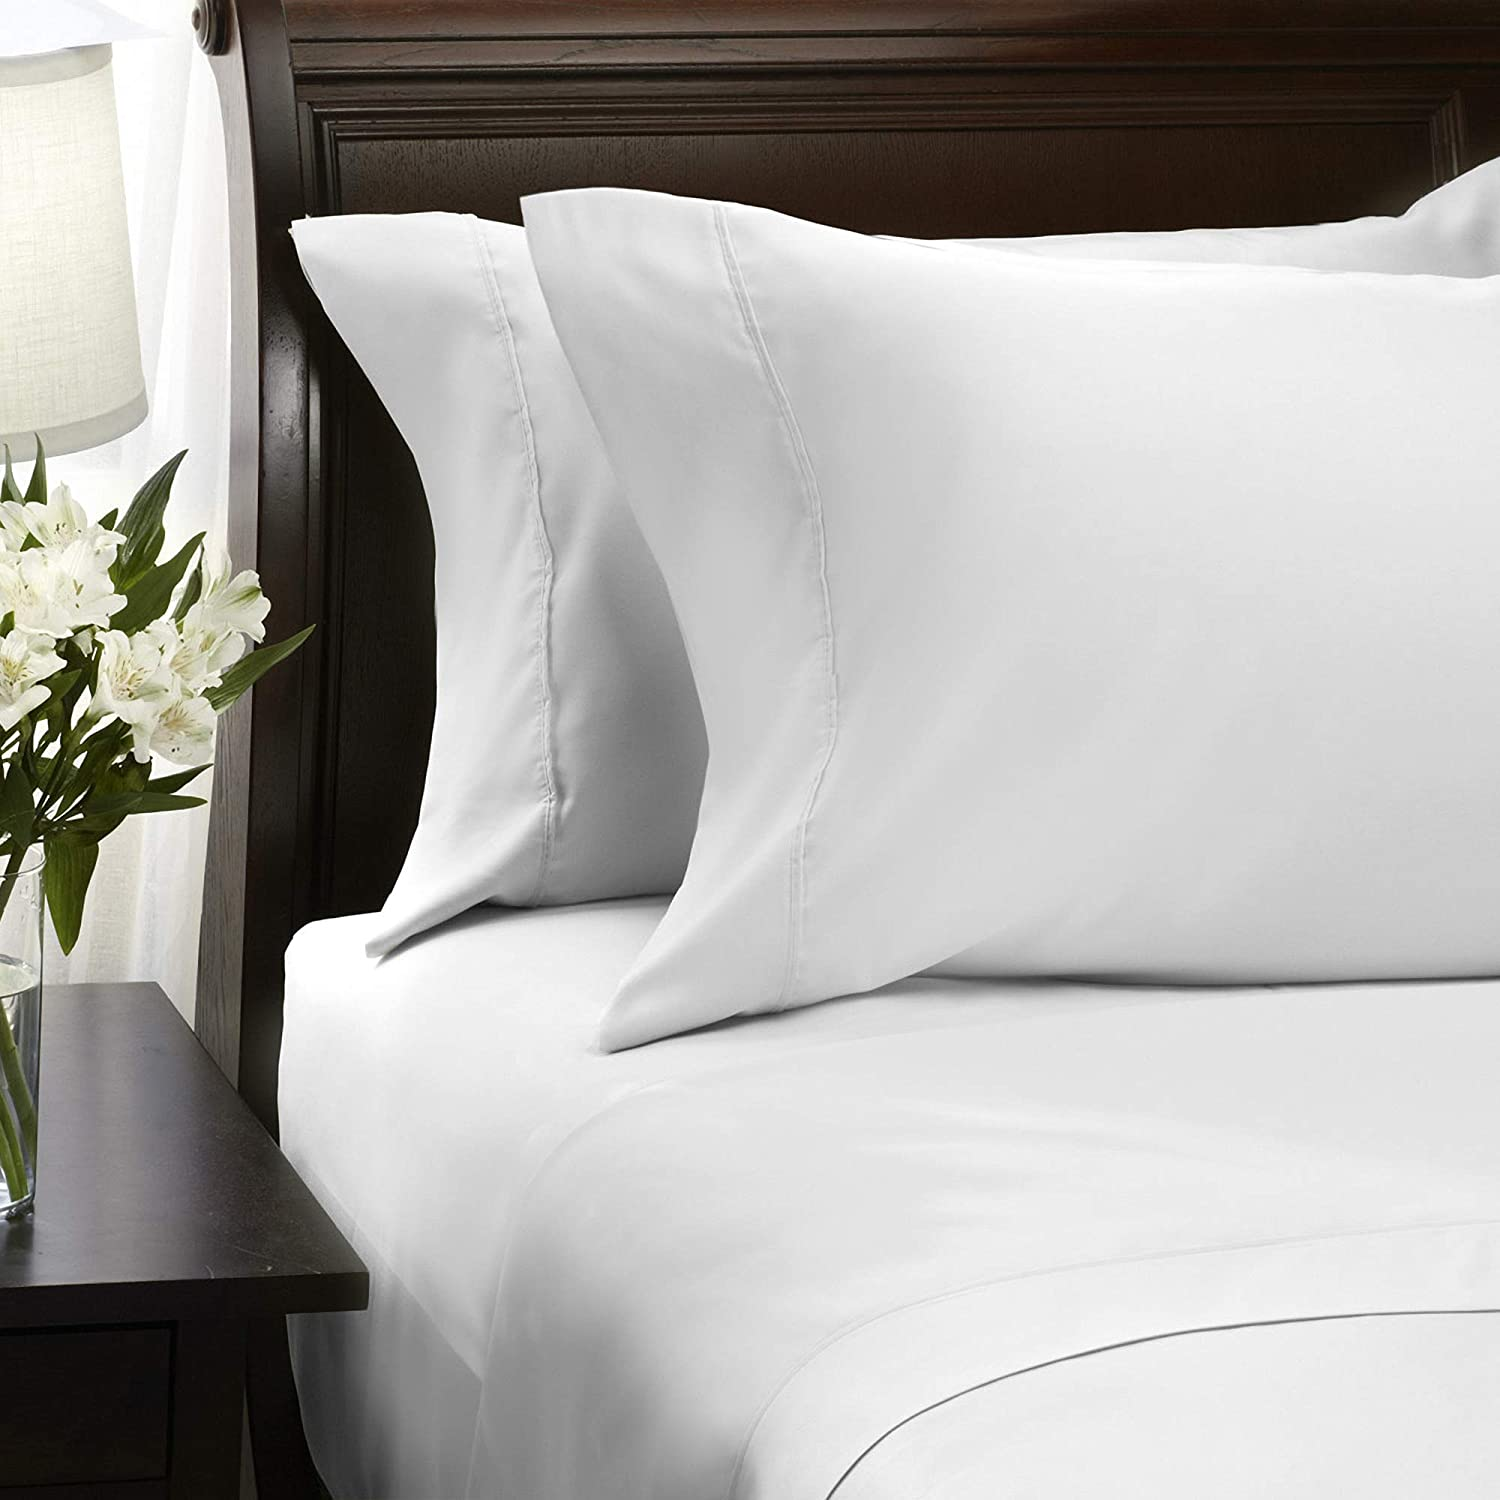 Hallmark King Size Bed Sheets Set - Soft Brushed Microfiber Sheets White Bed Sheets King Set Deep Pocket 16 Inches, Wrinkle Free and Hypoallergenic - 4 Piece Set, King, Bright White